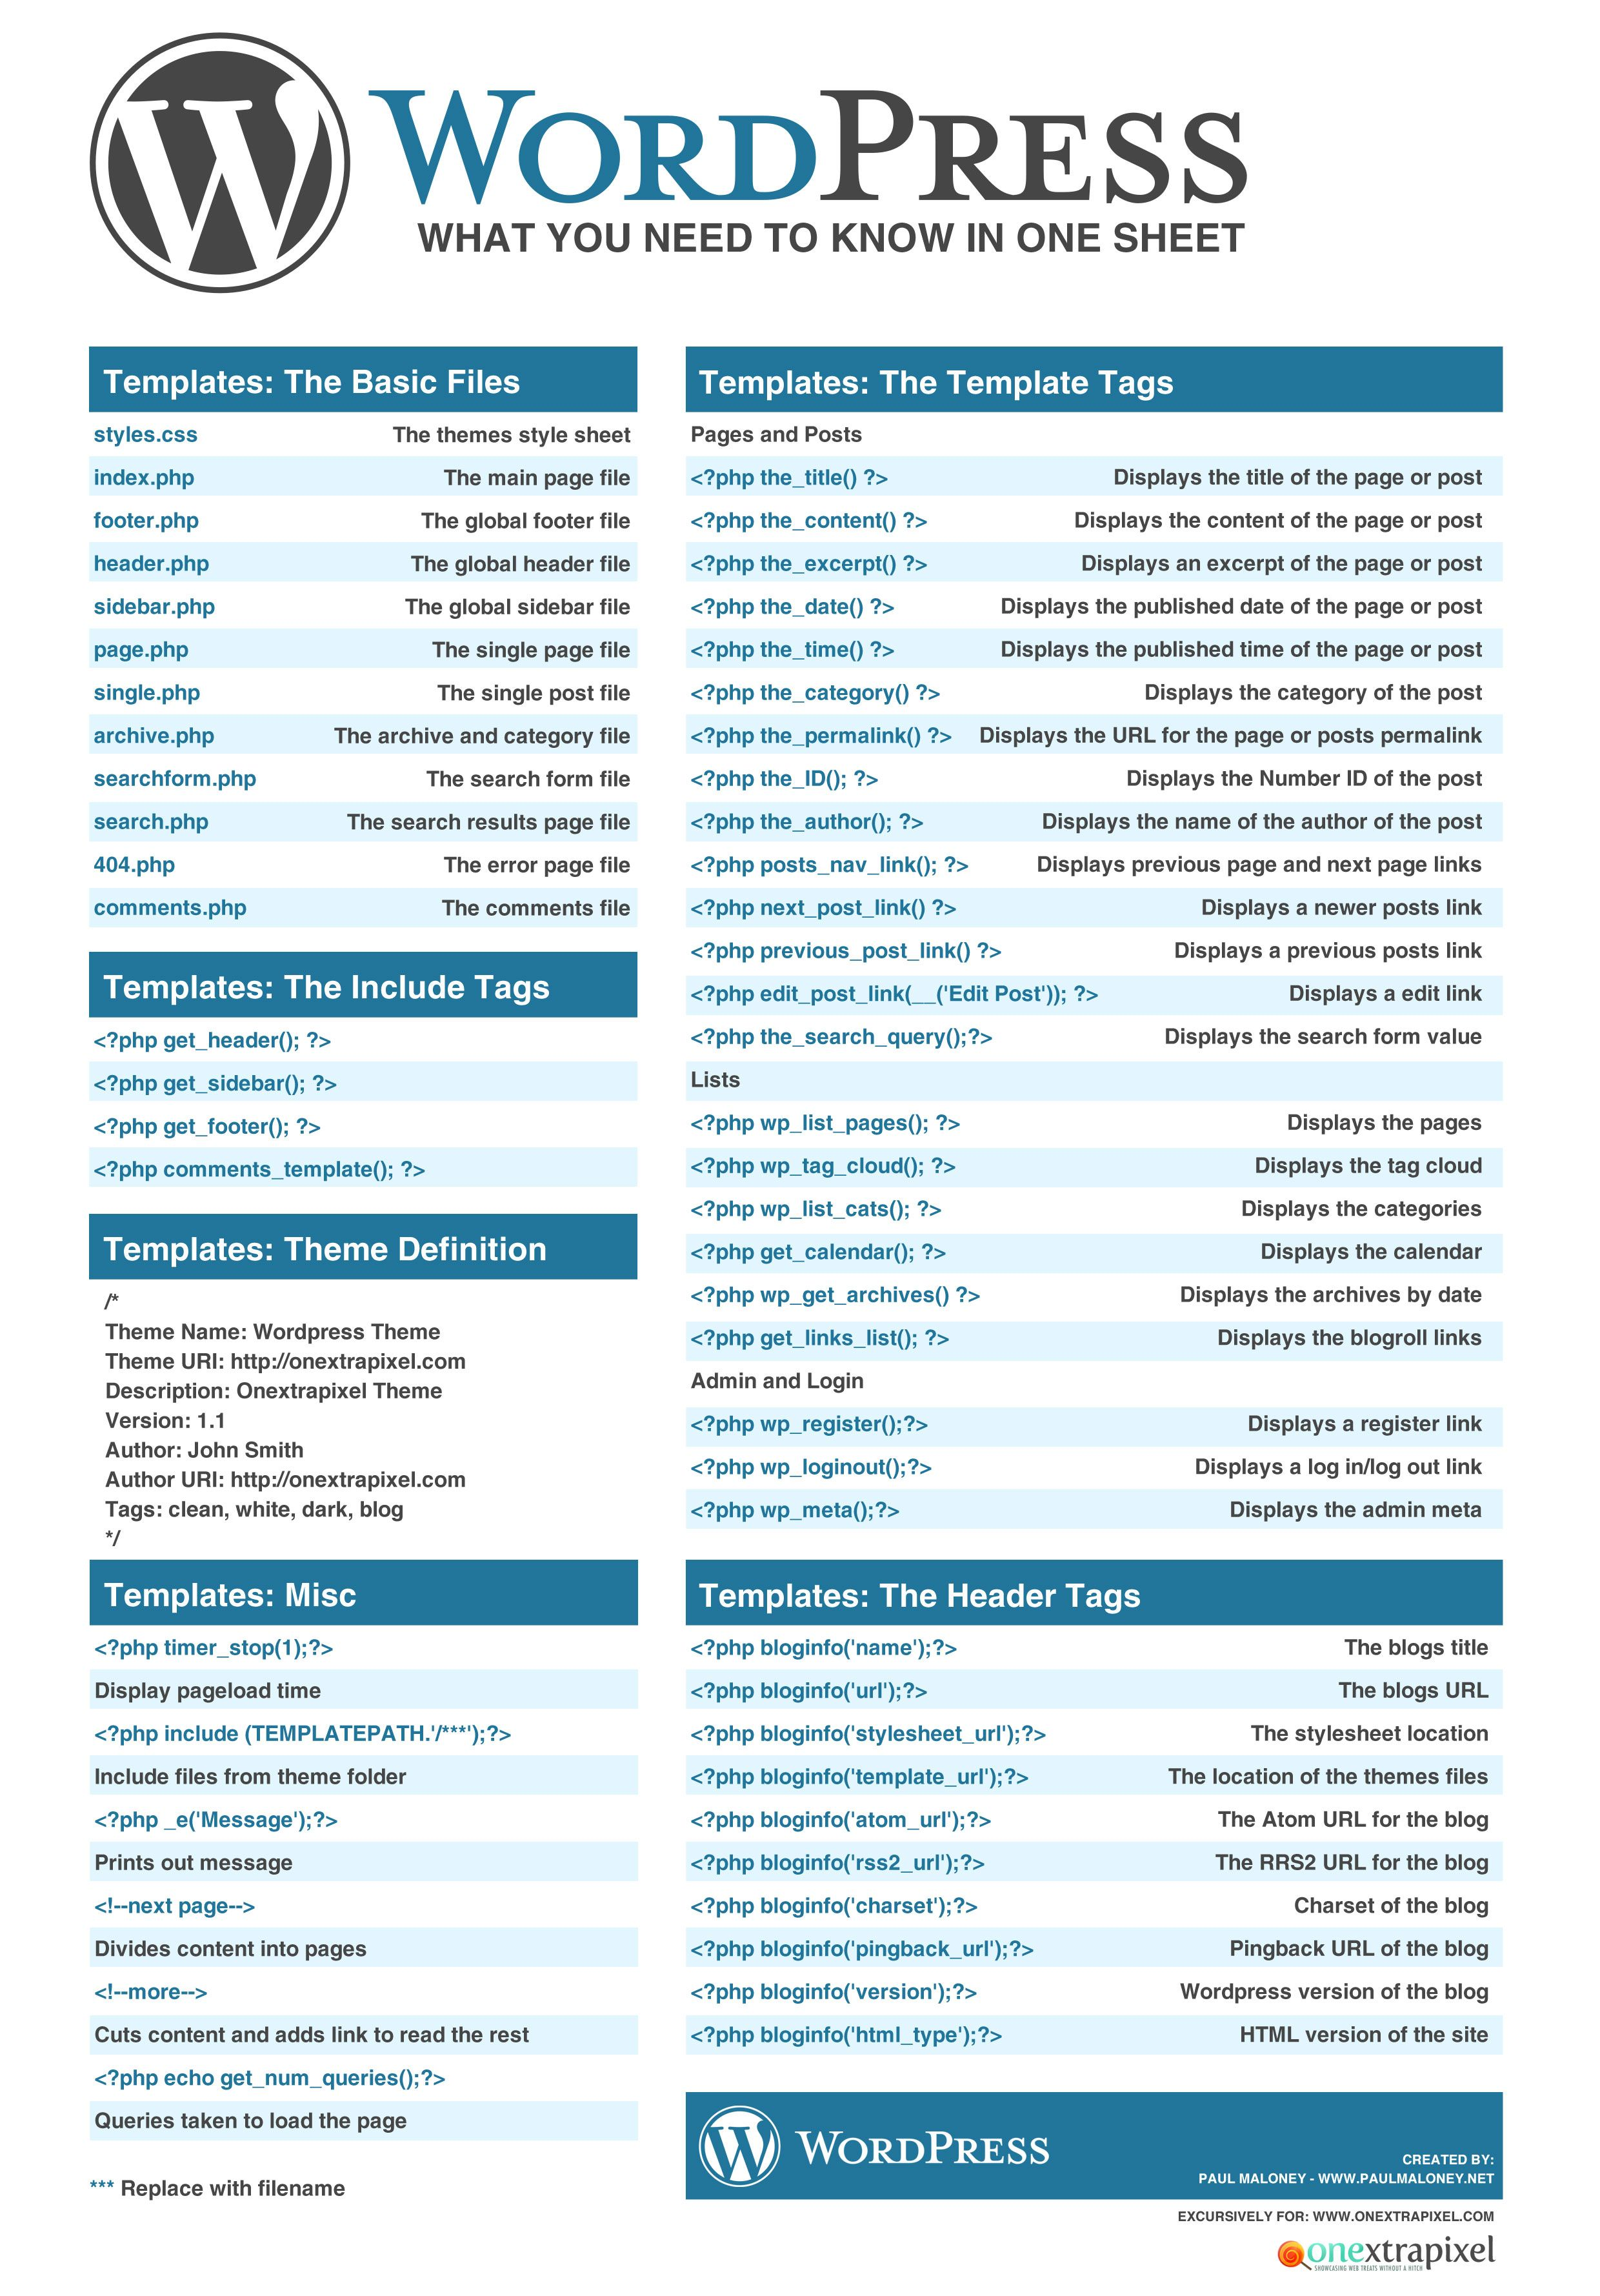 Wordpress Cheatsheet What You Need To Know In One Sheet Sept 2010